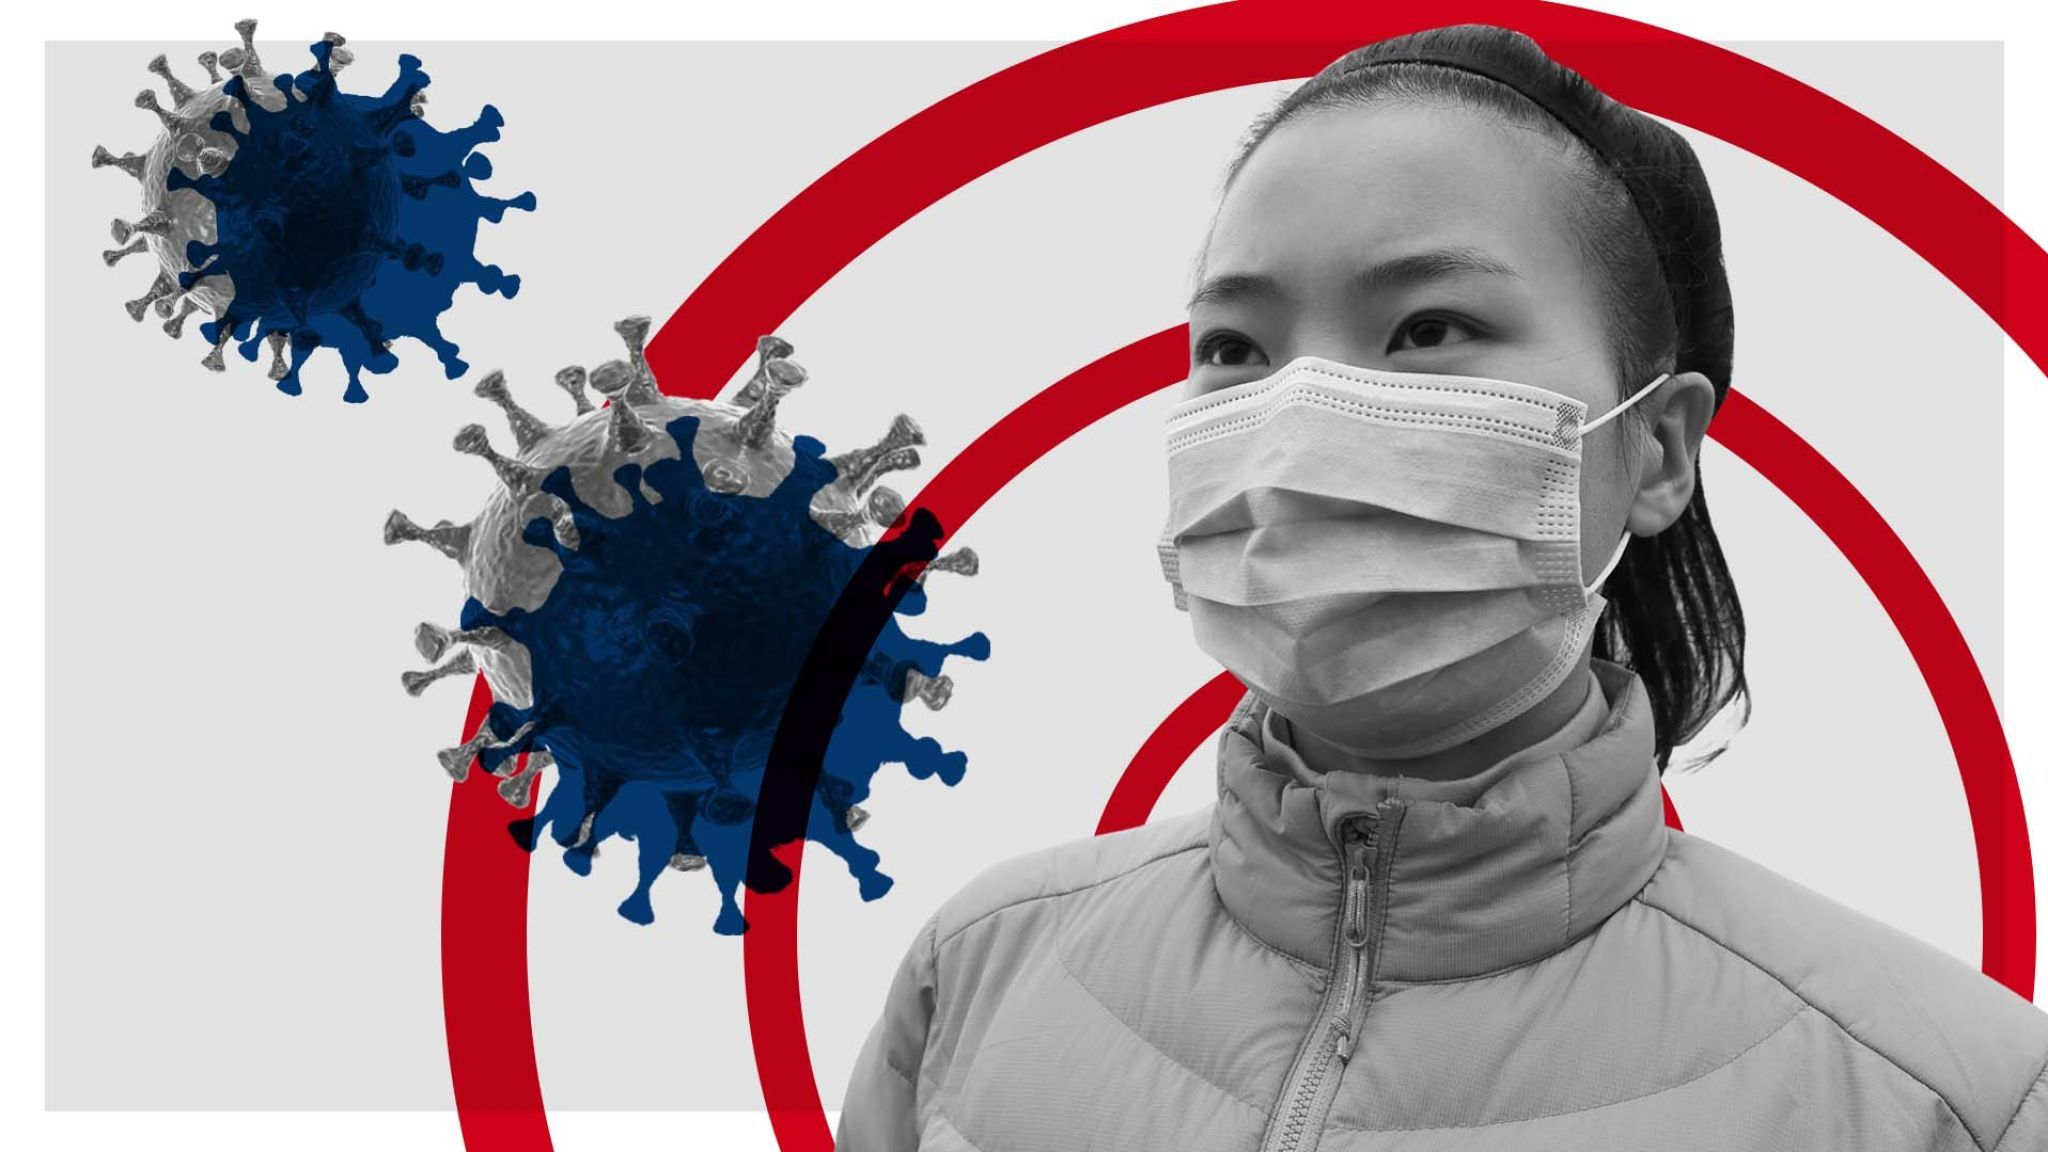 SABIC donates RMB 8mn to Hubei province for battle against Covid-19 outbreak